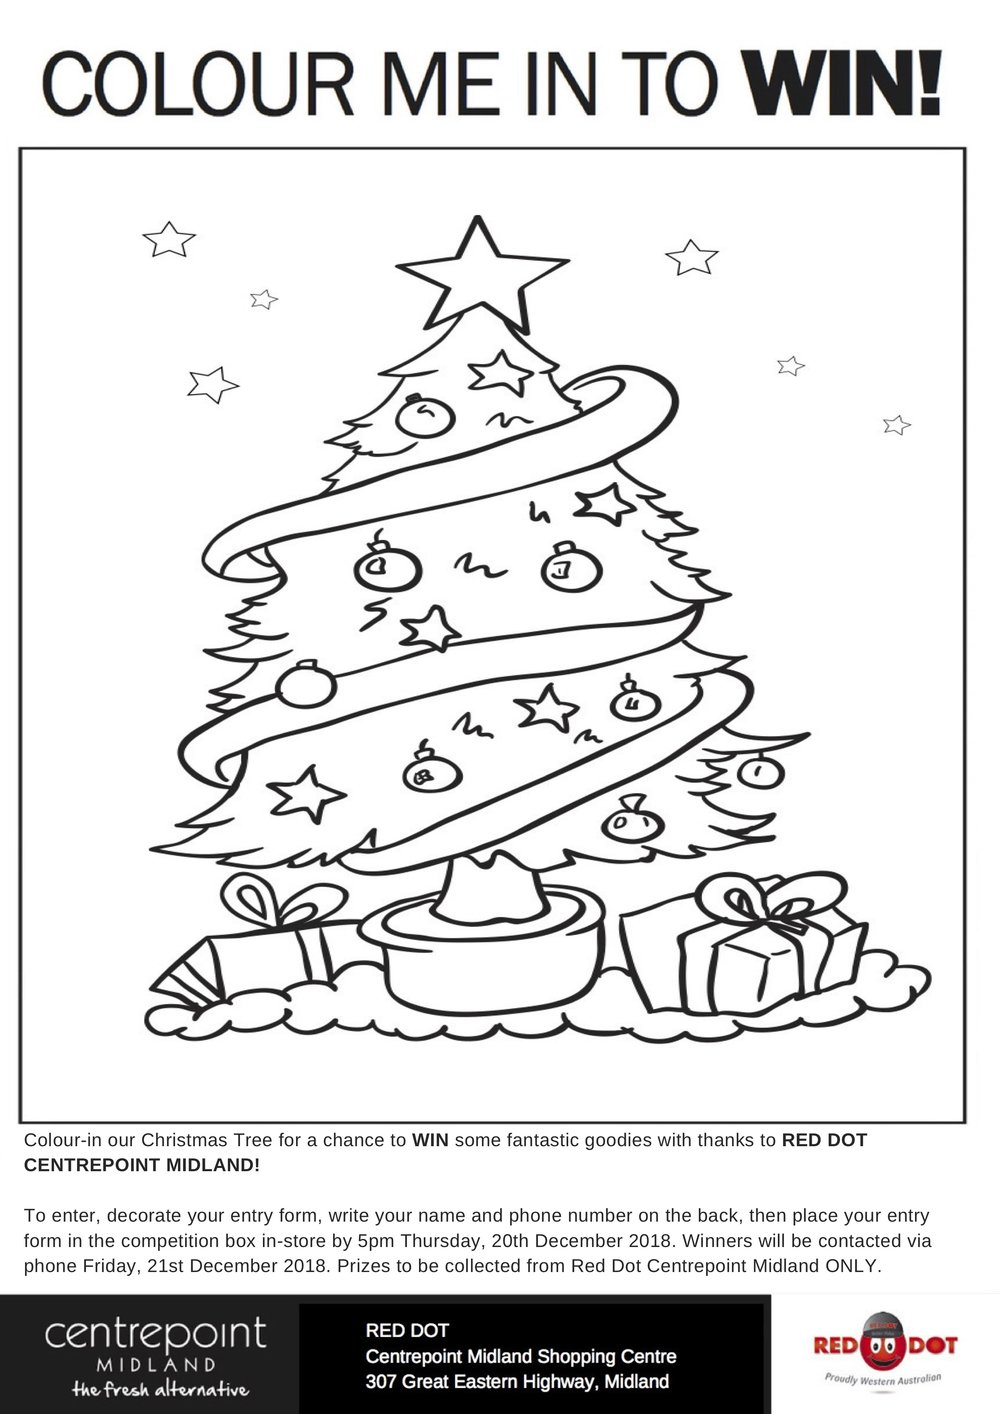 Red Dot Xmas colouring-in competition form Xmas Tree.jpg